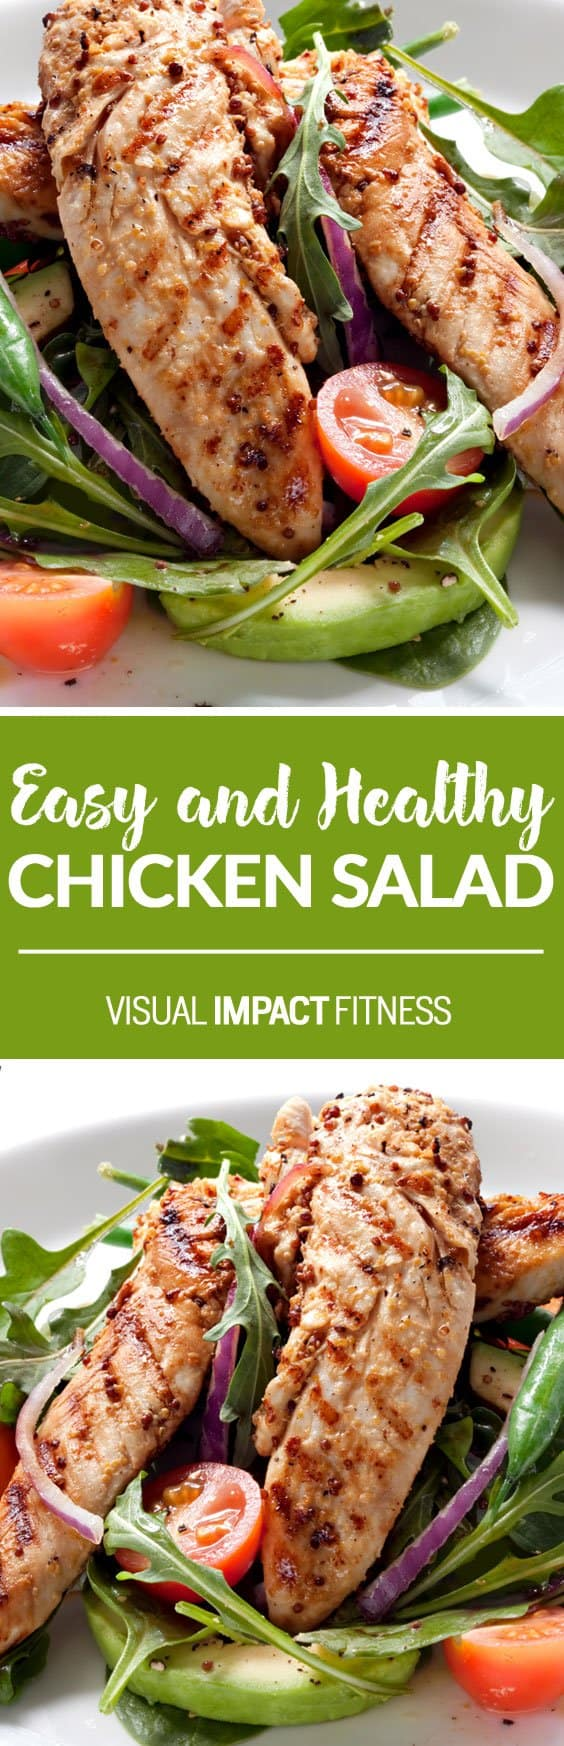 Why Chicken Salad for Weight Reduction? Chicken salad has constantly treated me well. During the ups and downs in my life, chicken salad has constantly been there for me. When life is stressful, chicken salad remains calm. When things are going well, chicken salad celebrates with me. At times I feel like it is chicken salad and me against the world!